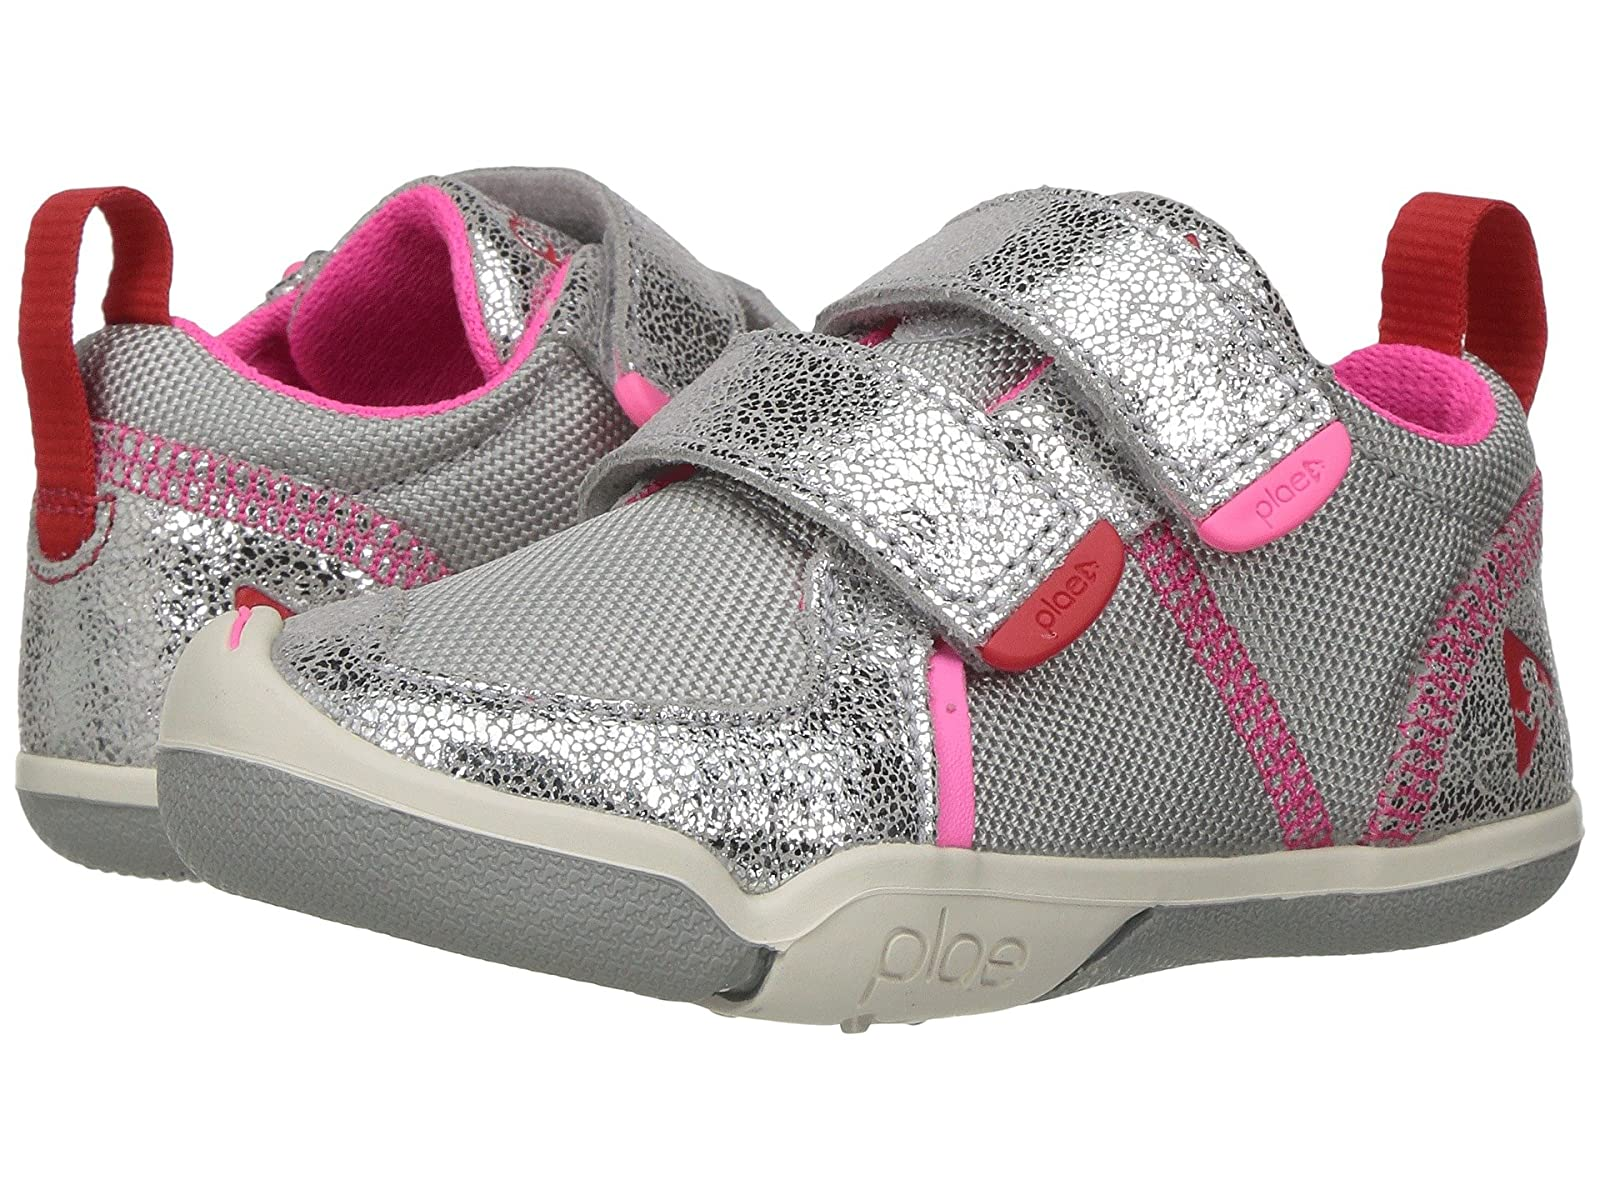 PLAE Ty (Toddler/Little Kid)Atmospheric grades have affordable shoes